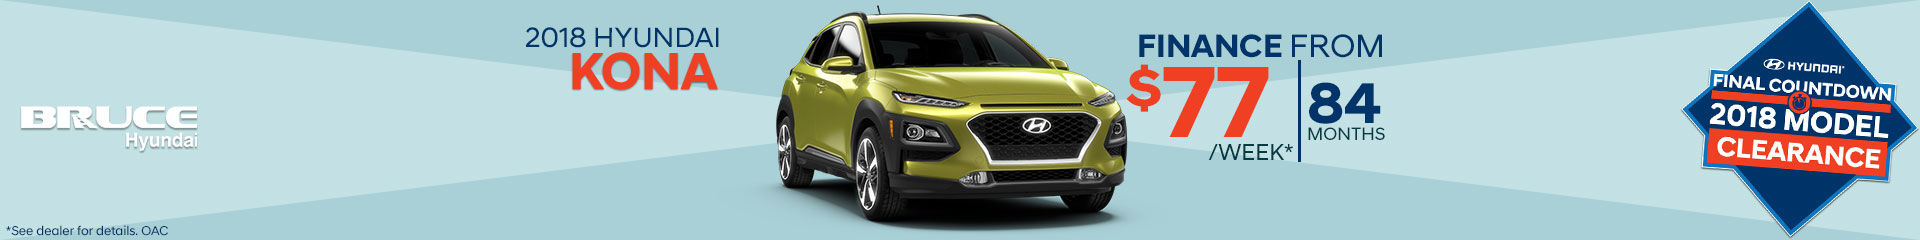 Finance the 2018 Hyundai Kona